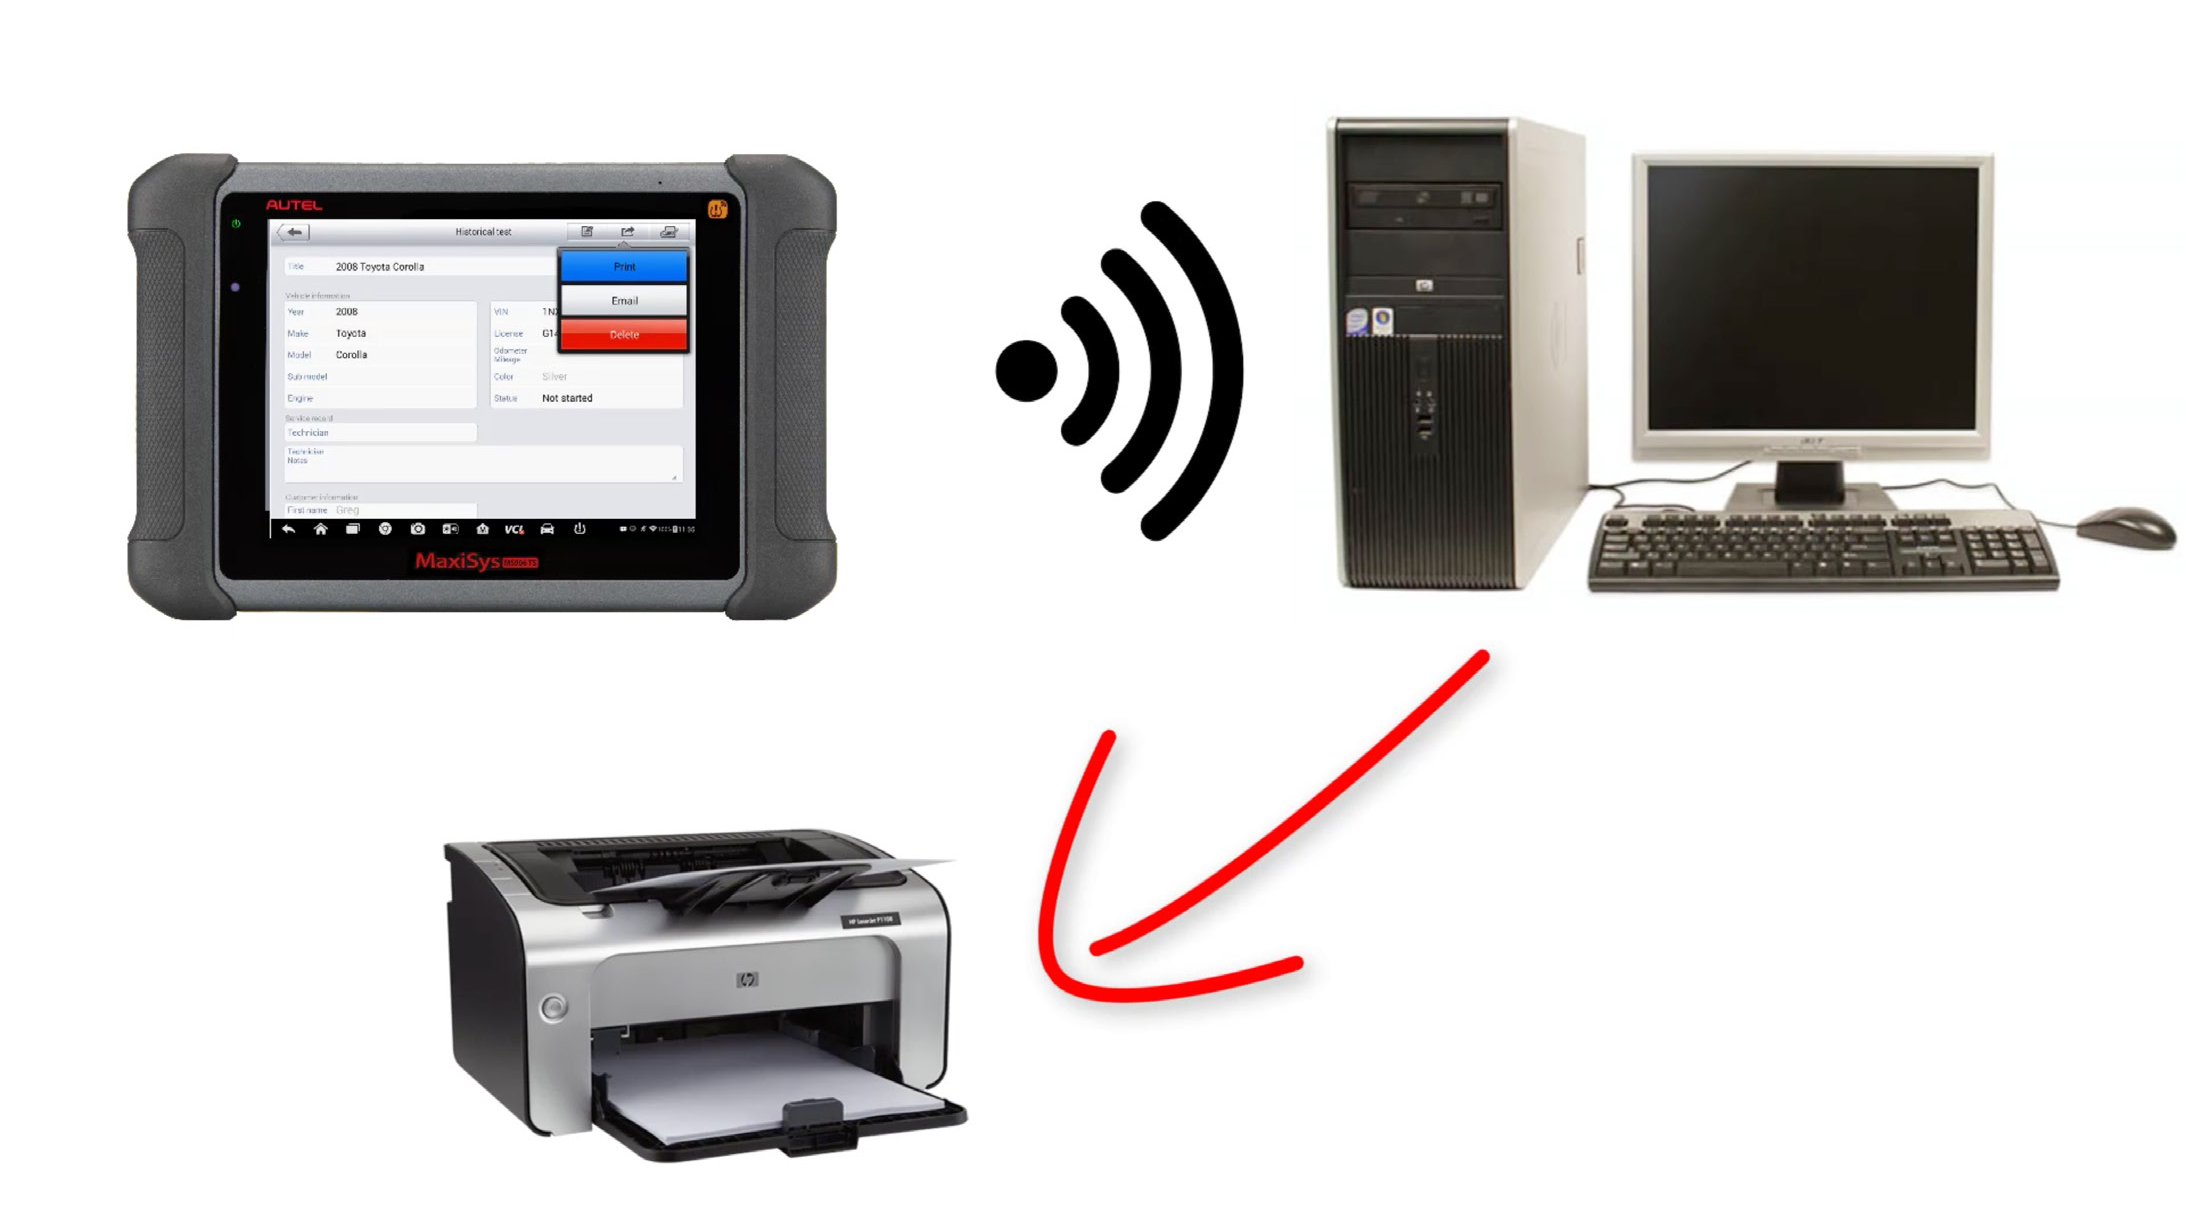 Autel-MaxiSYS-tablet-WIFI-PRINTING-Instruction-Guide-1